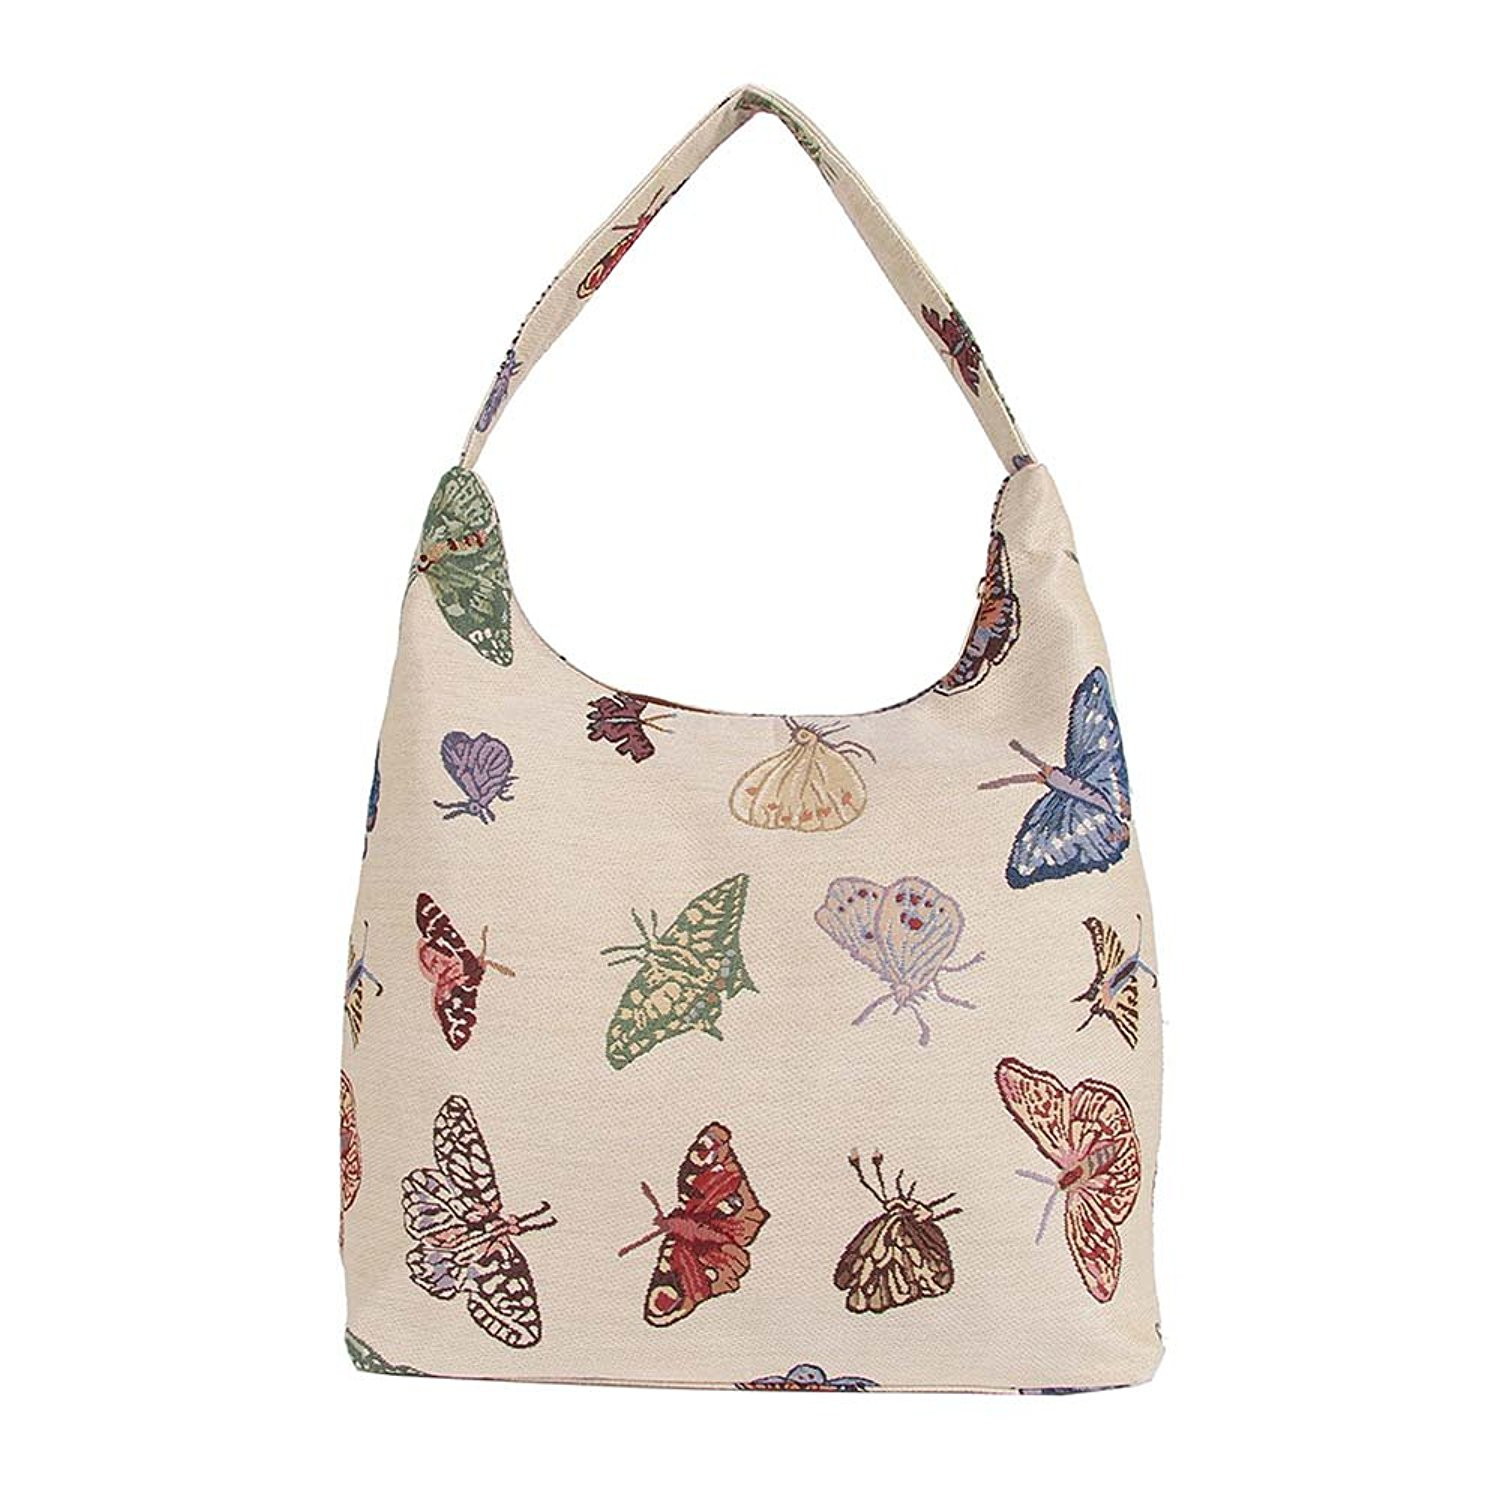 937dd727a0 Get Quotations · Butterfly Ladies Fashion Canvas Tapestry Top Zip Hobo  Shoulder Bag Beach Bag by Signare (HOBO